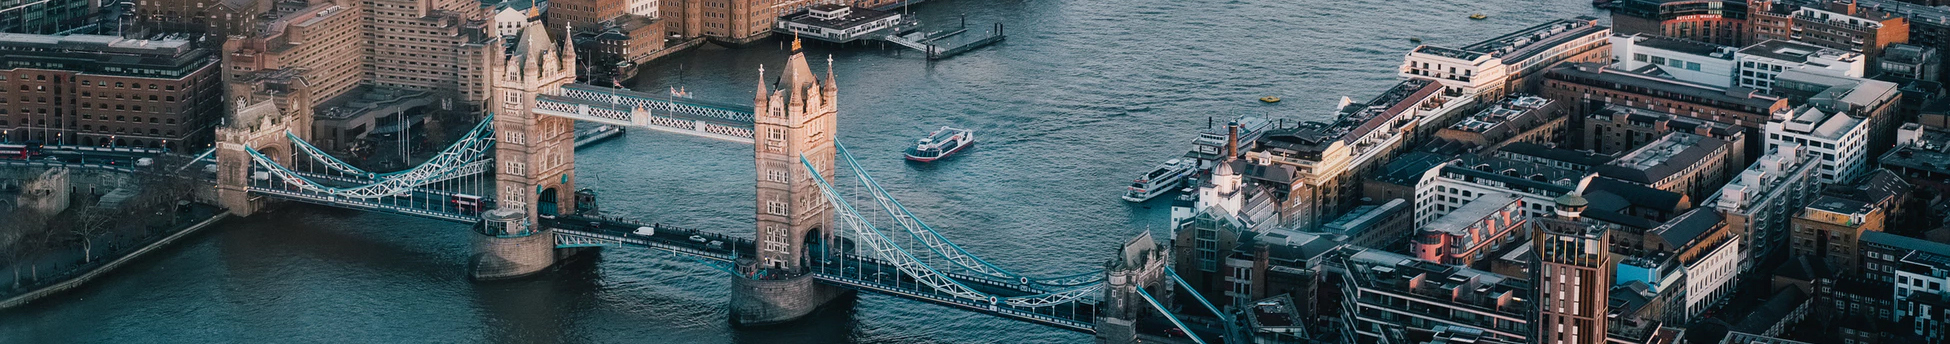 London Header Image